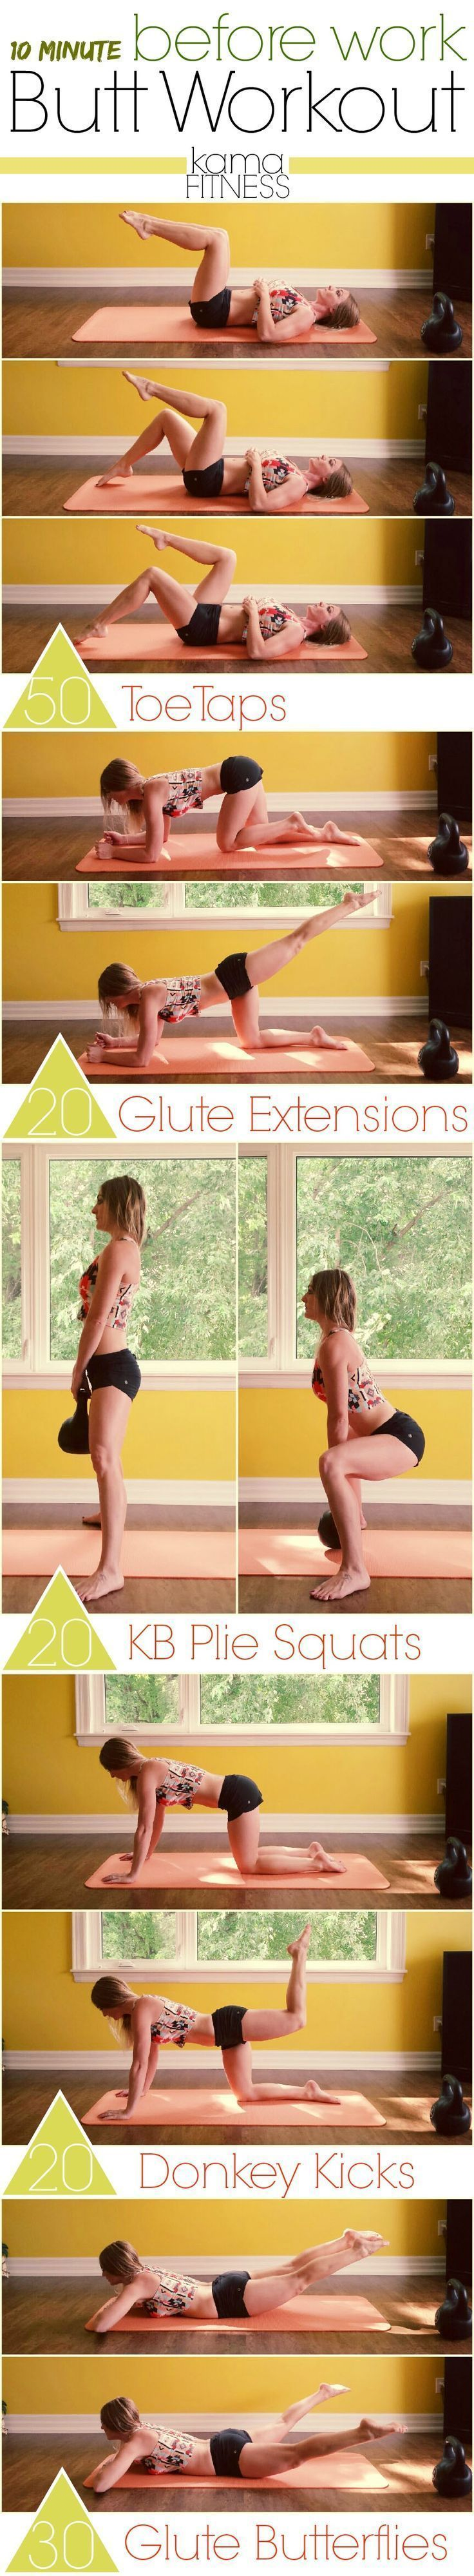 10 Minute, Before Work, Butt Workout that everyone has time for!! http://amzn.to/2sp7uCw